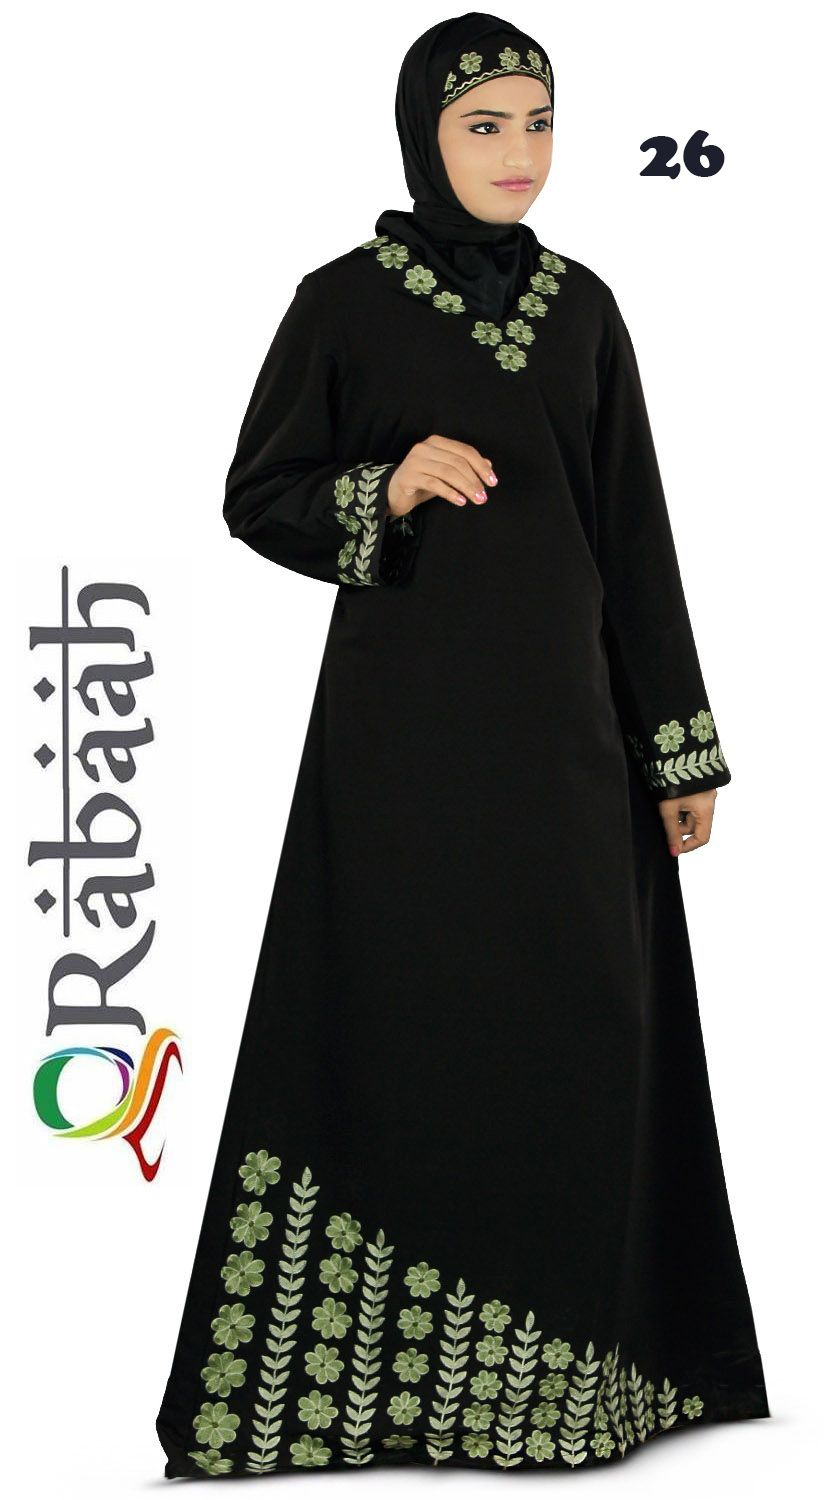 Model  AY289 Islamic Dress Burka Jilbab Hijab Muslim Clothing  EBay